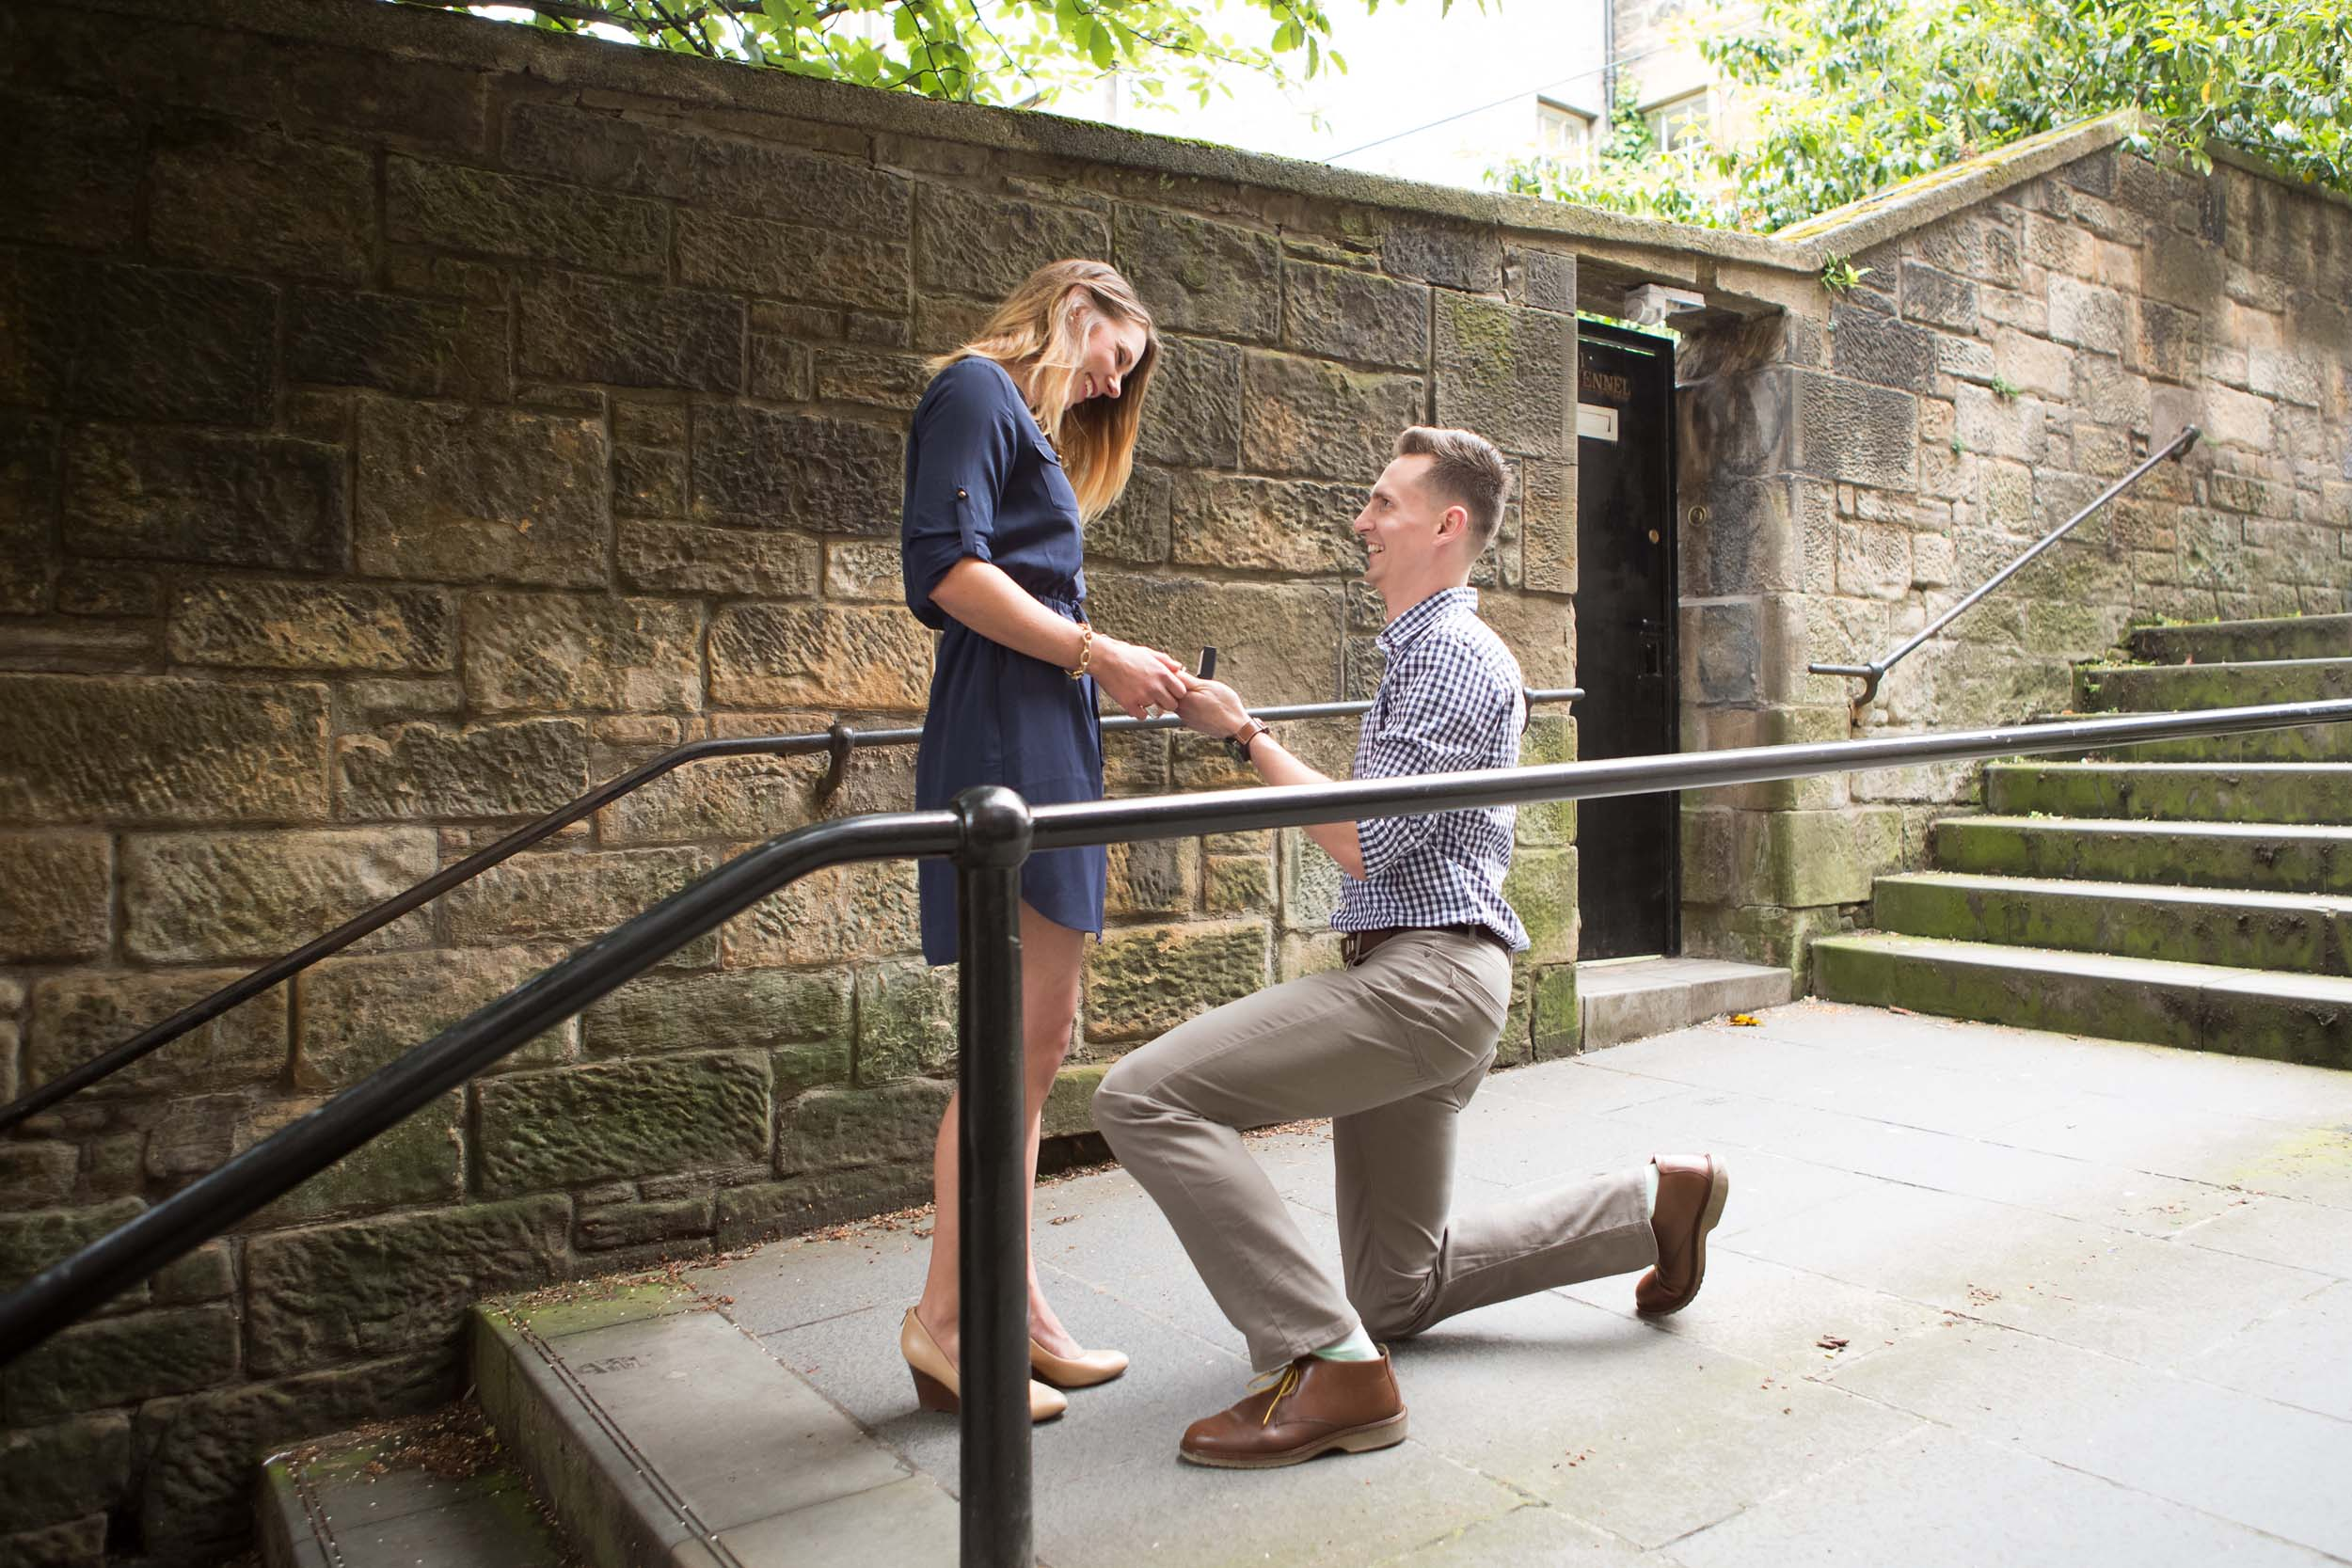 Couple smiling lovingly at each other while the male partner proposes to his female partner in Edinburgh, UK